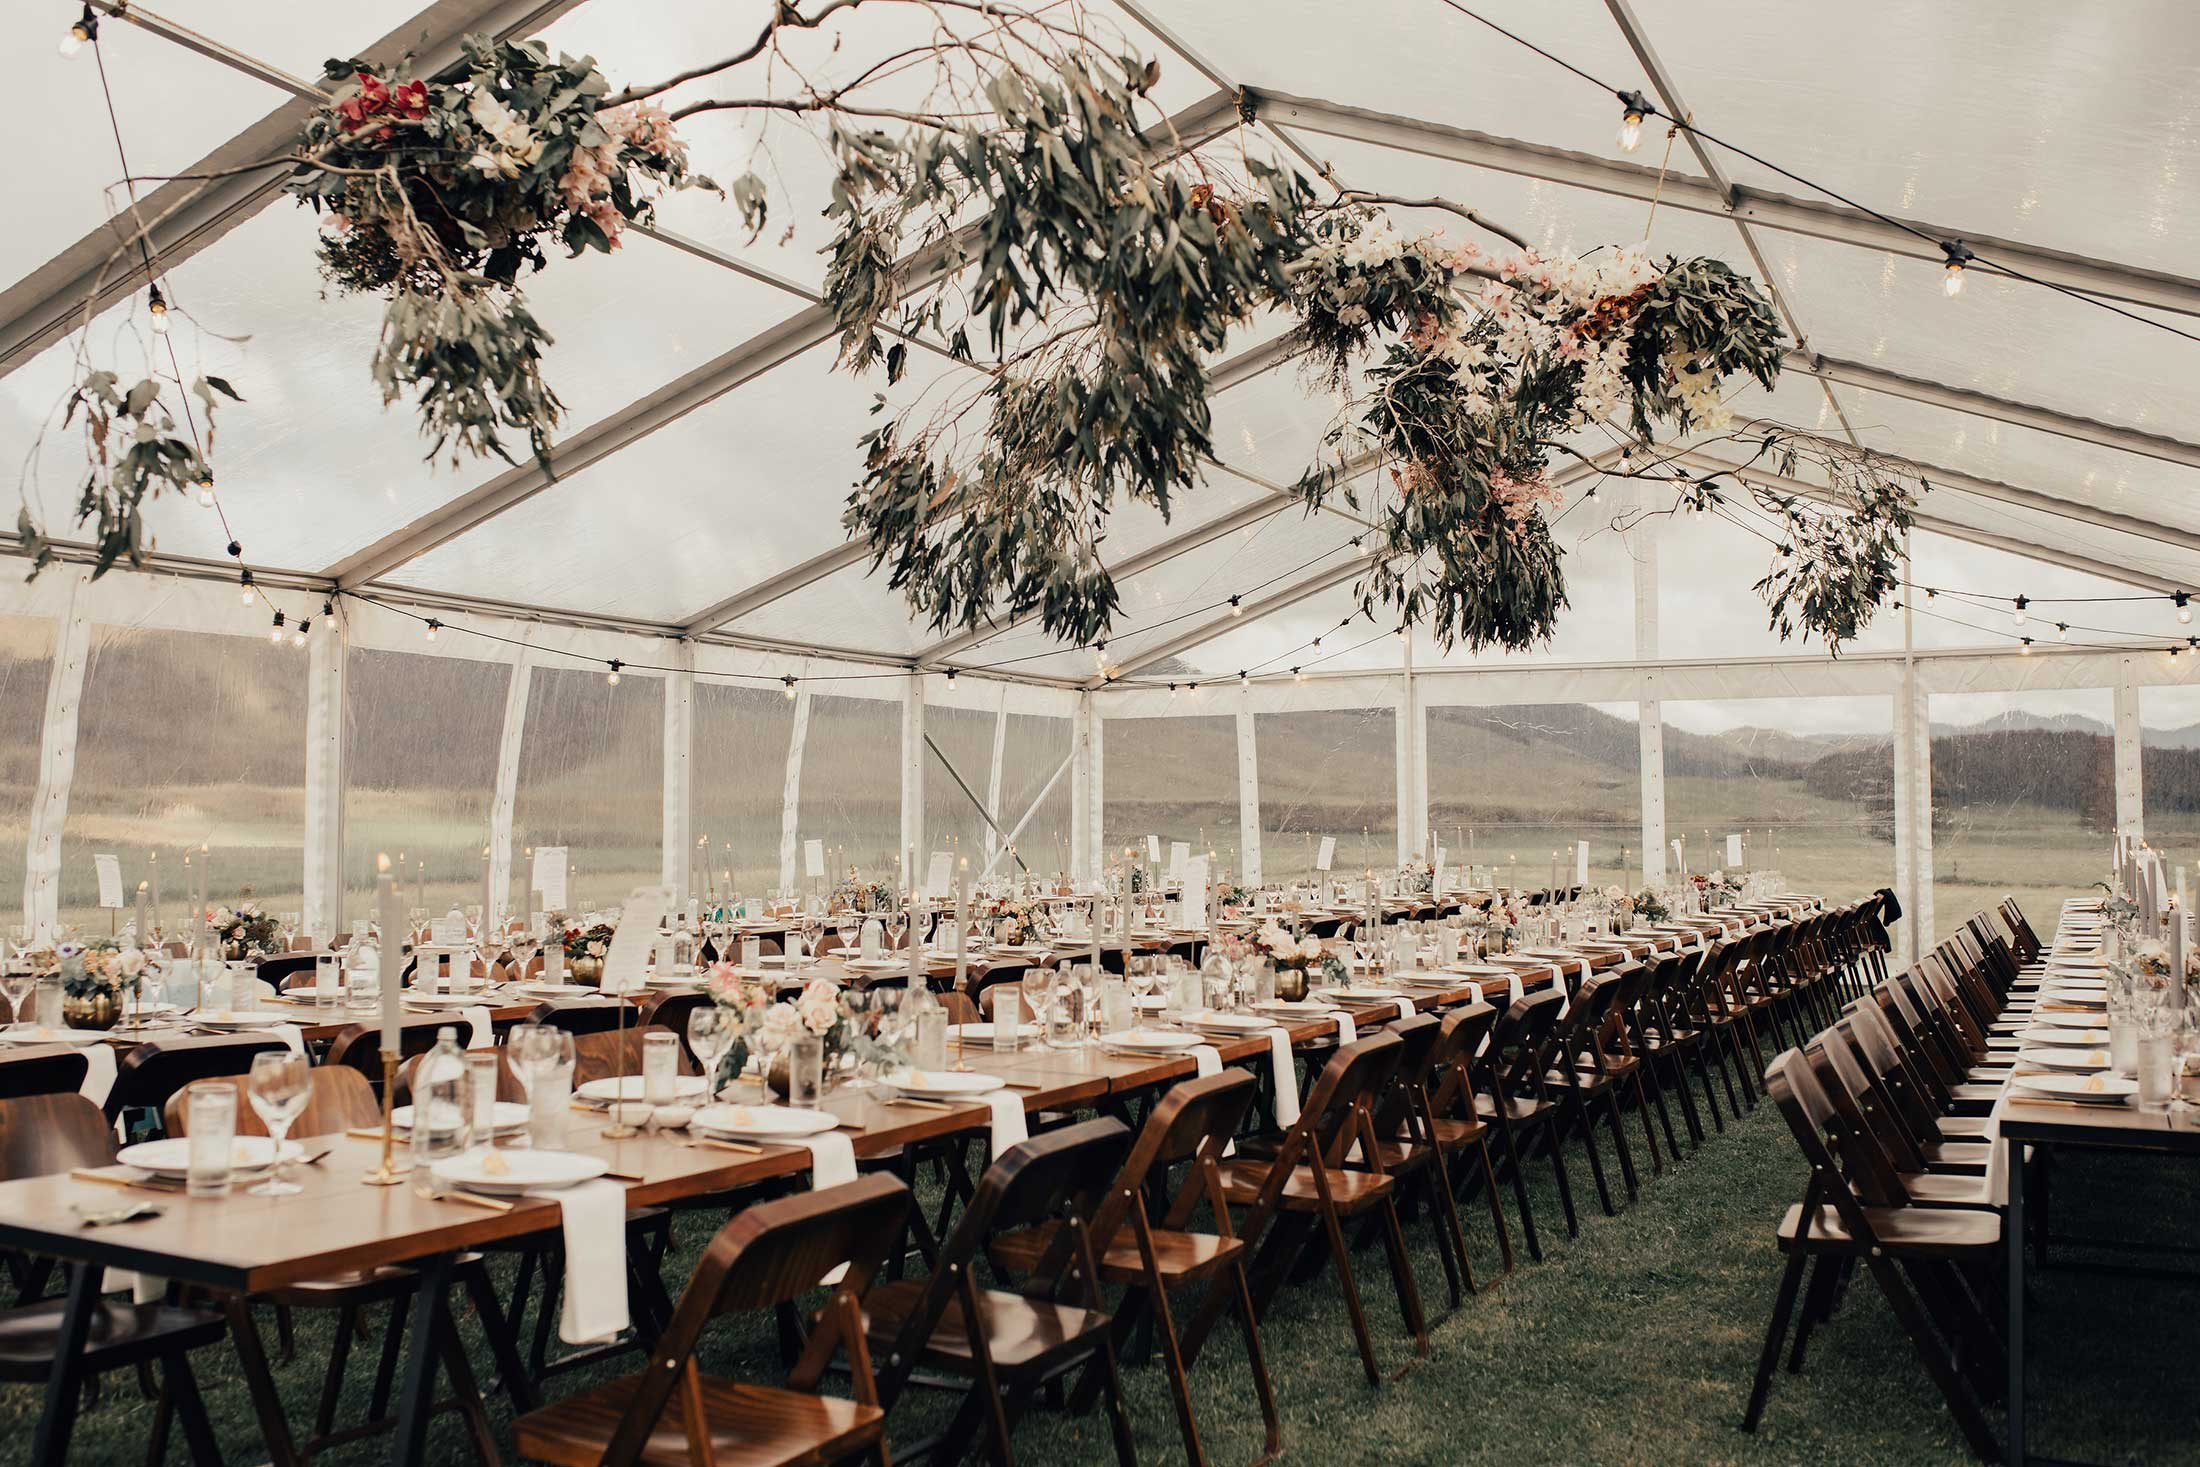 twelve-tables-inside-clear-marquee-hire-new-zealand-inside